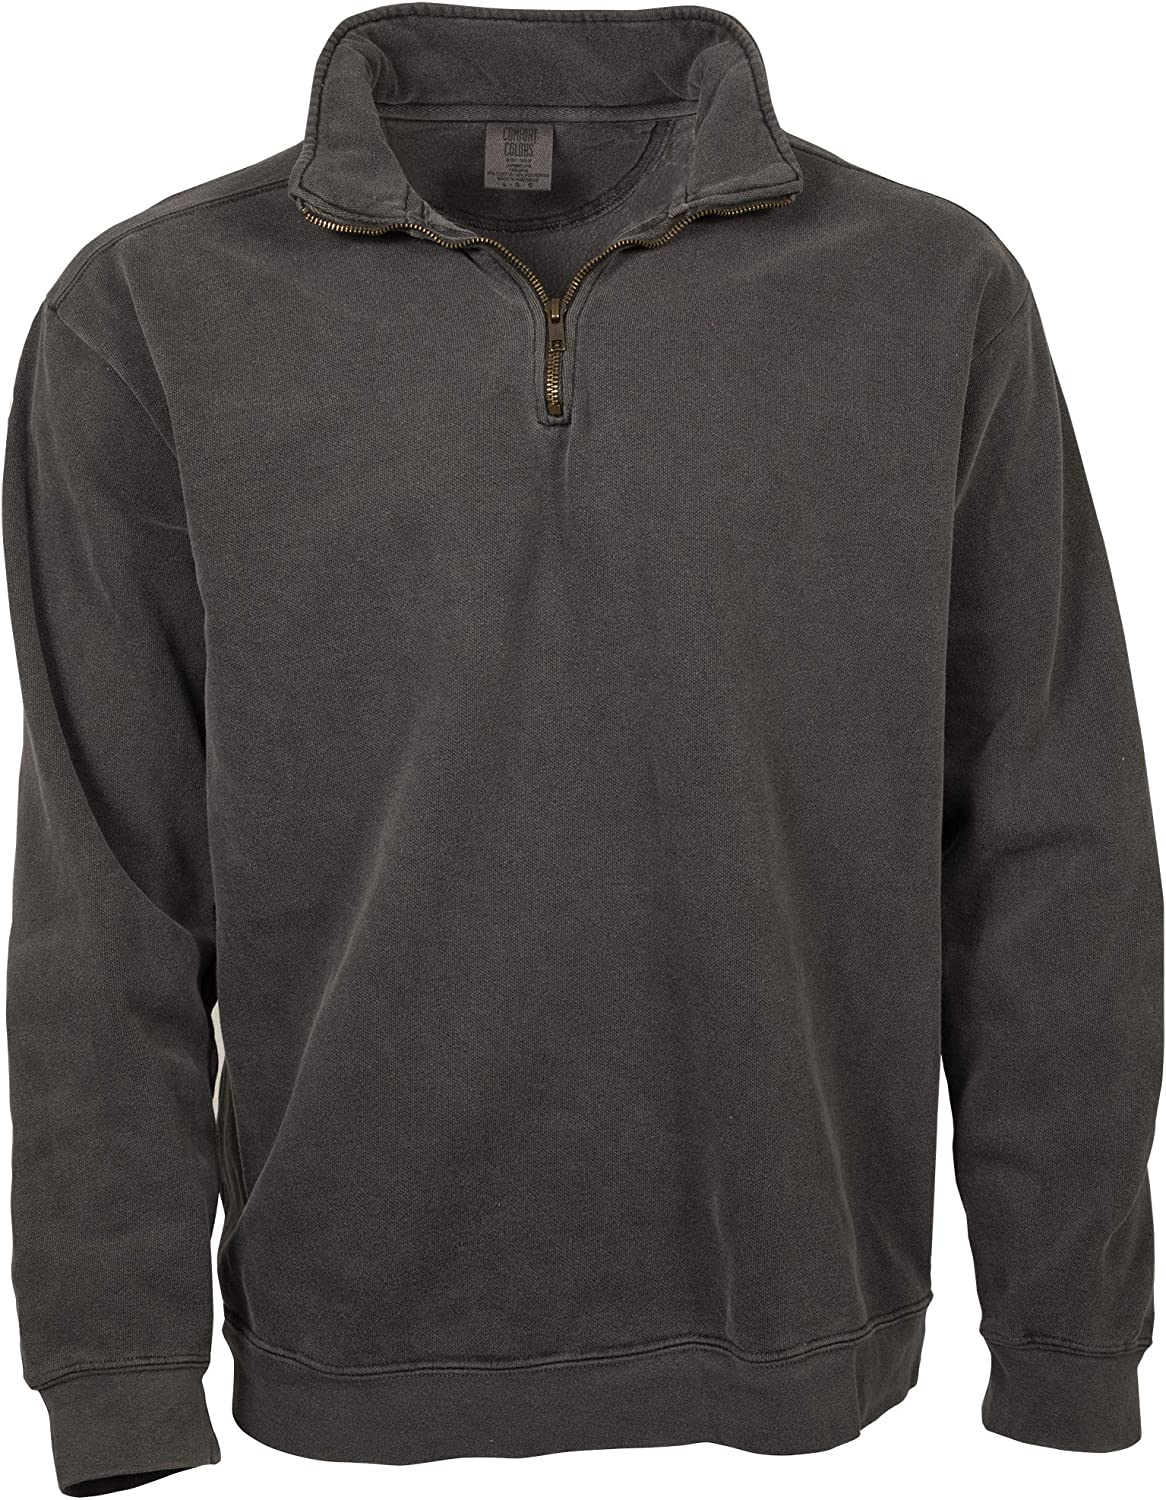 Comfort Colors Men's Adult 1/4 Zip Sweatshirt, Style 1580